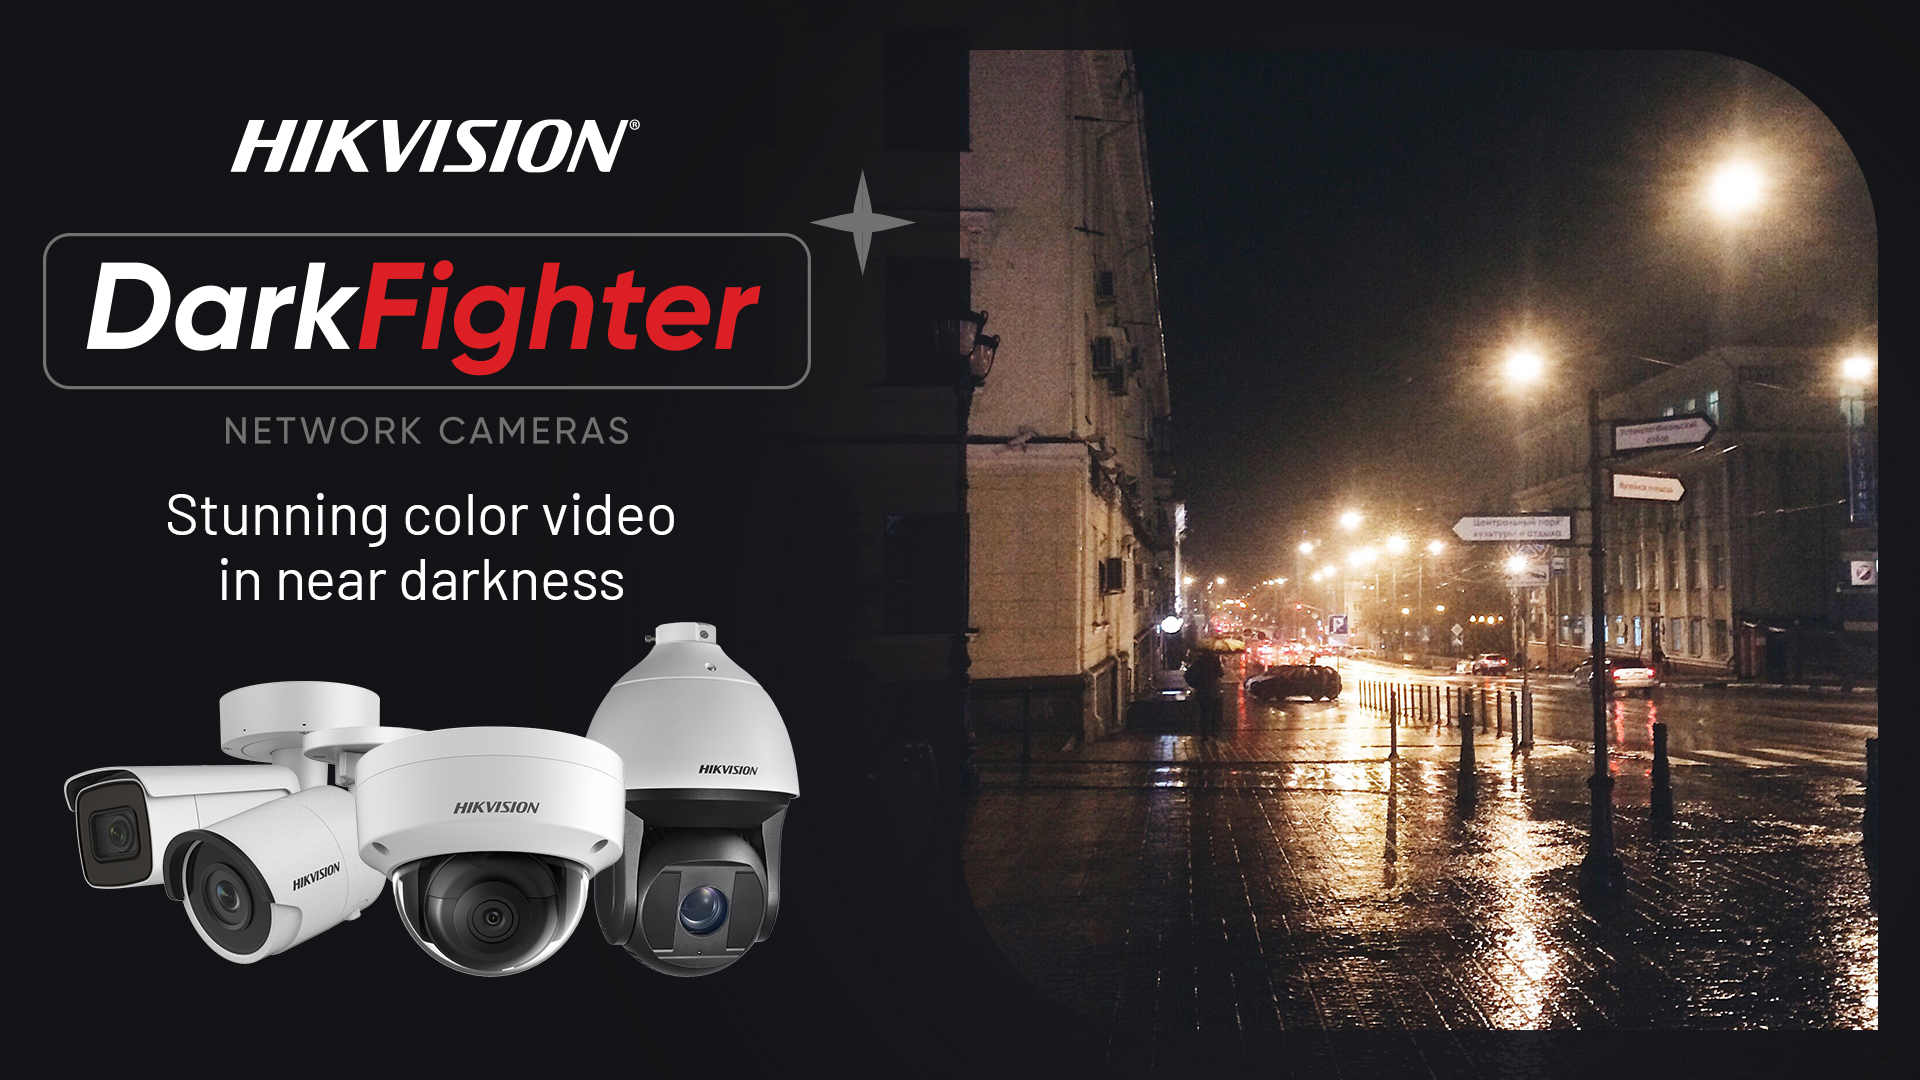 Hikvision DarkFighter